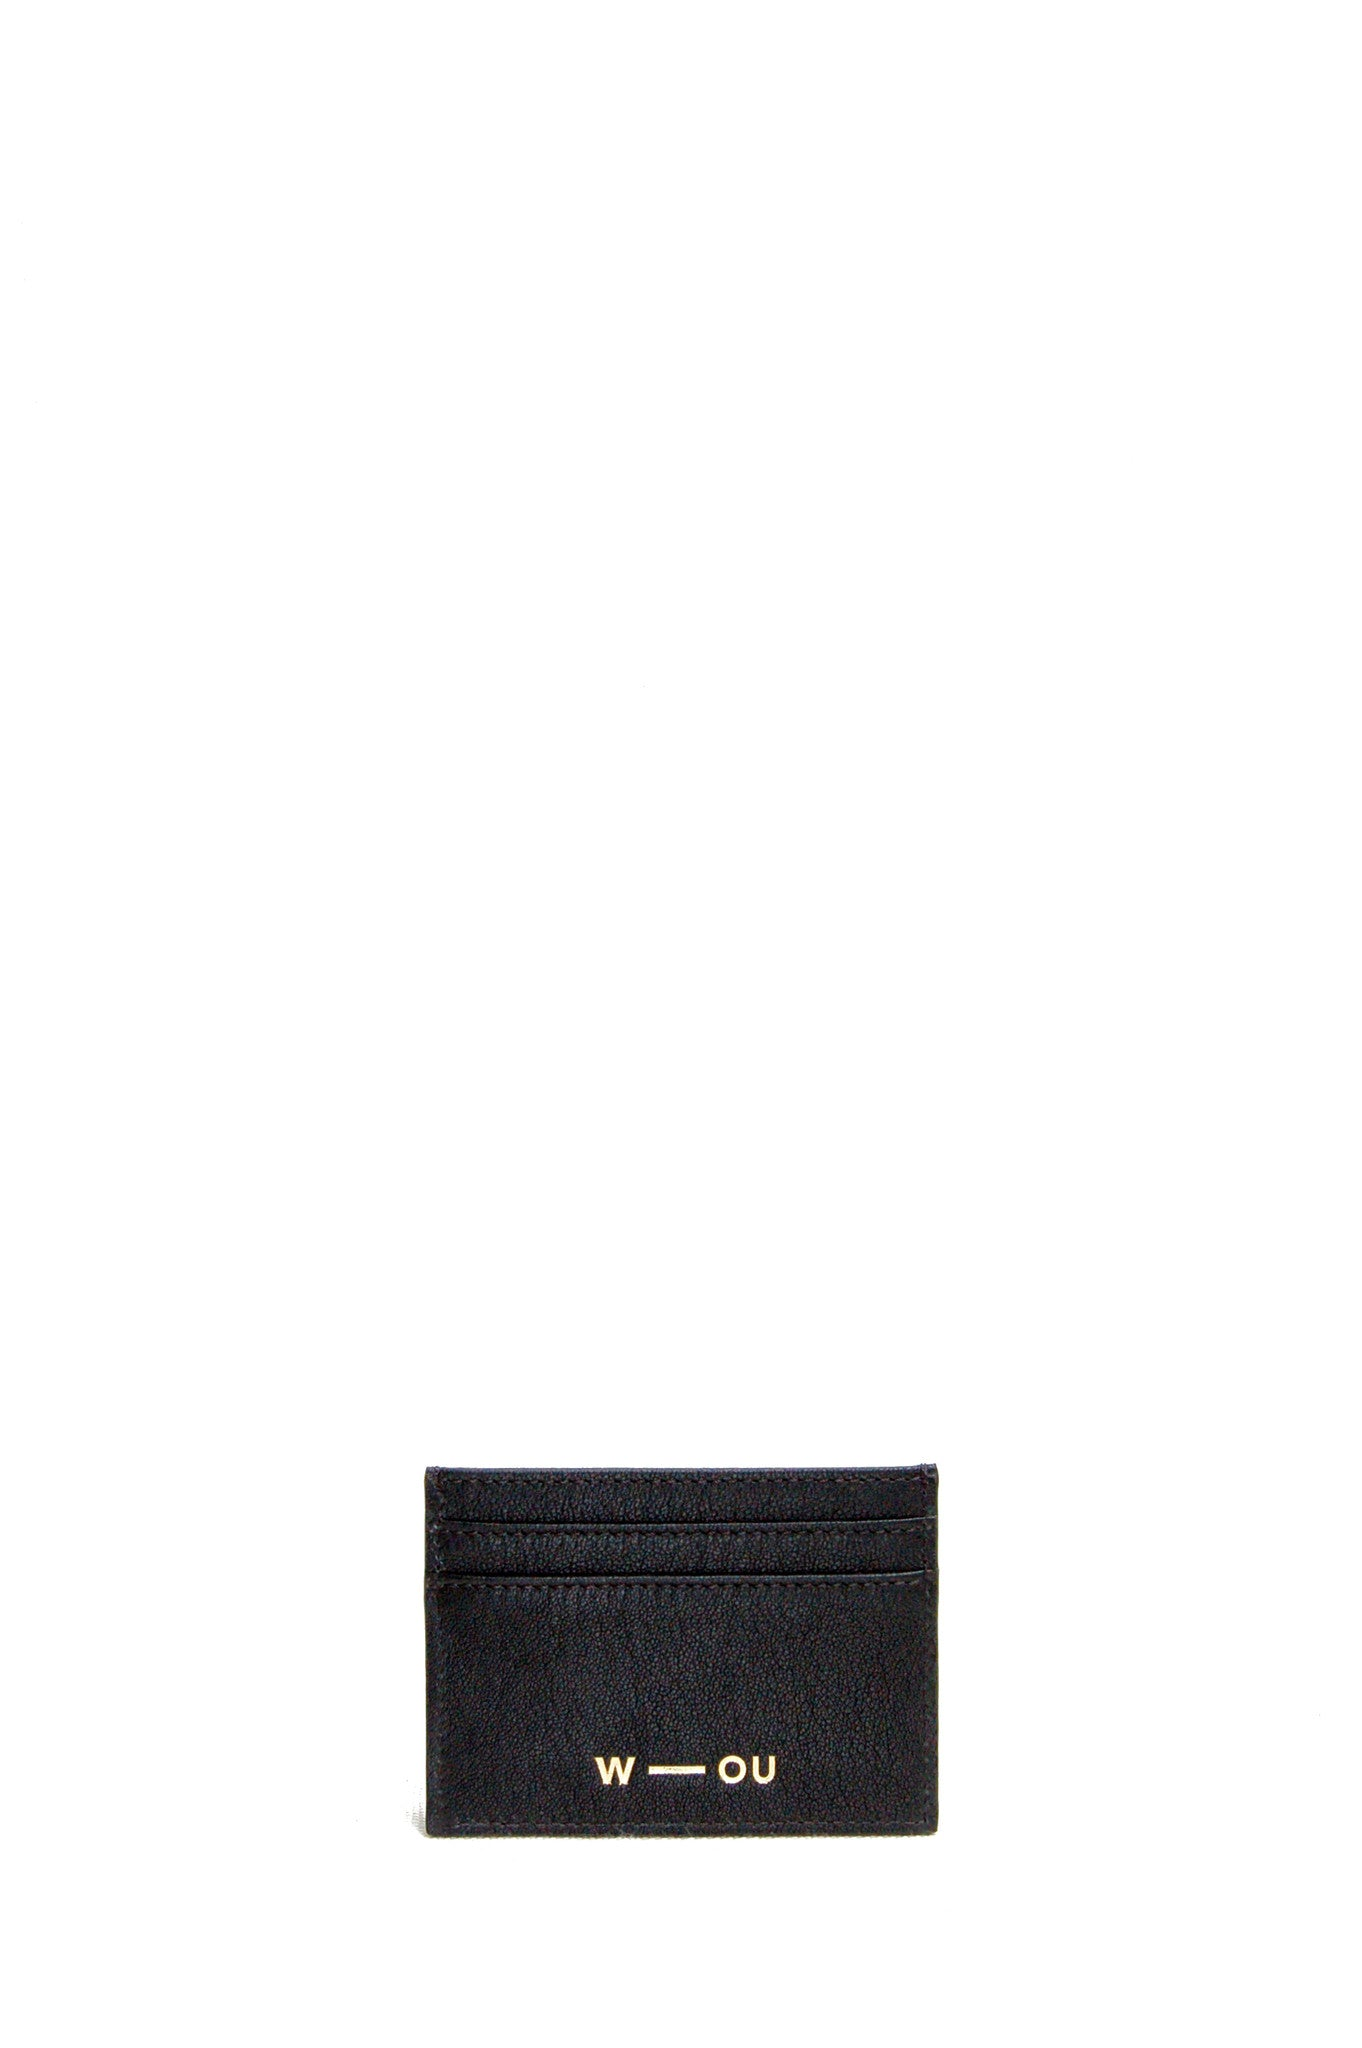 Wendee Ou: Gia cardholder definition | Accessories > Wallets,Accessories -  Hiphunters Shop